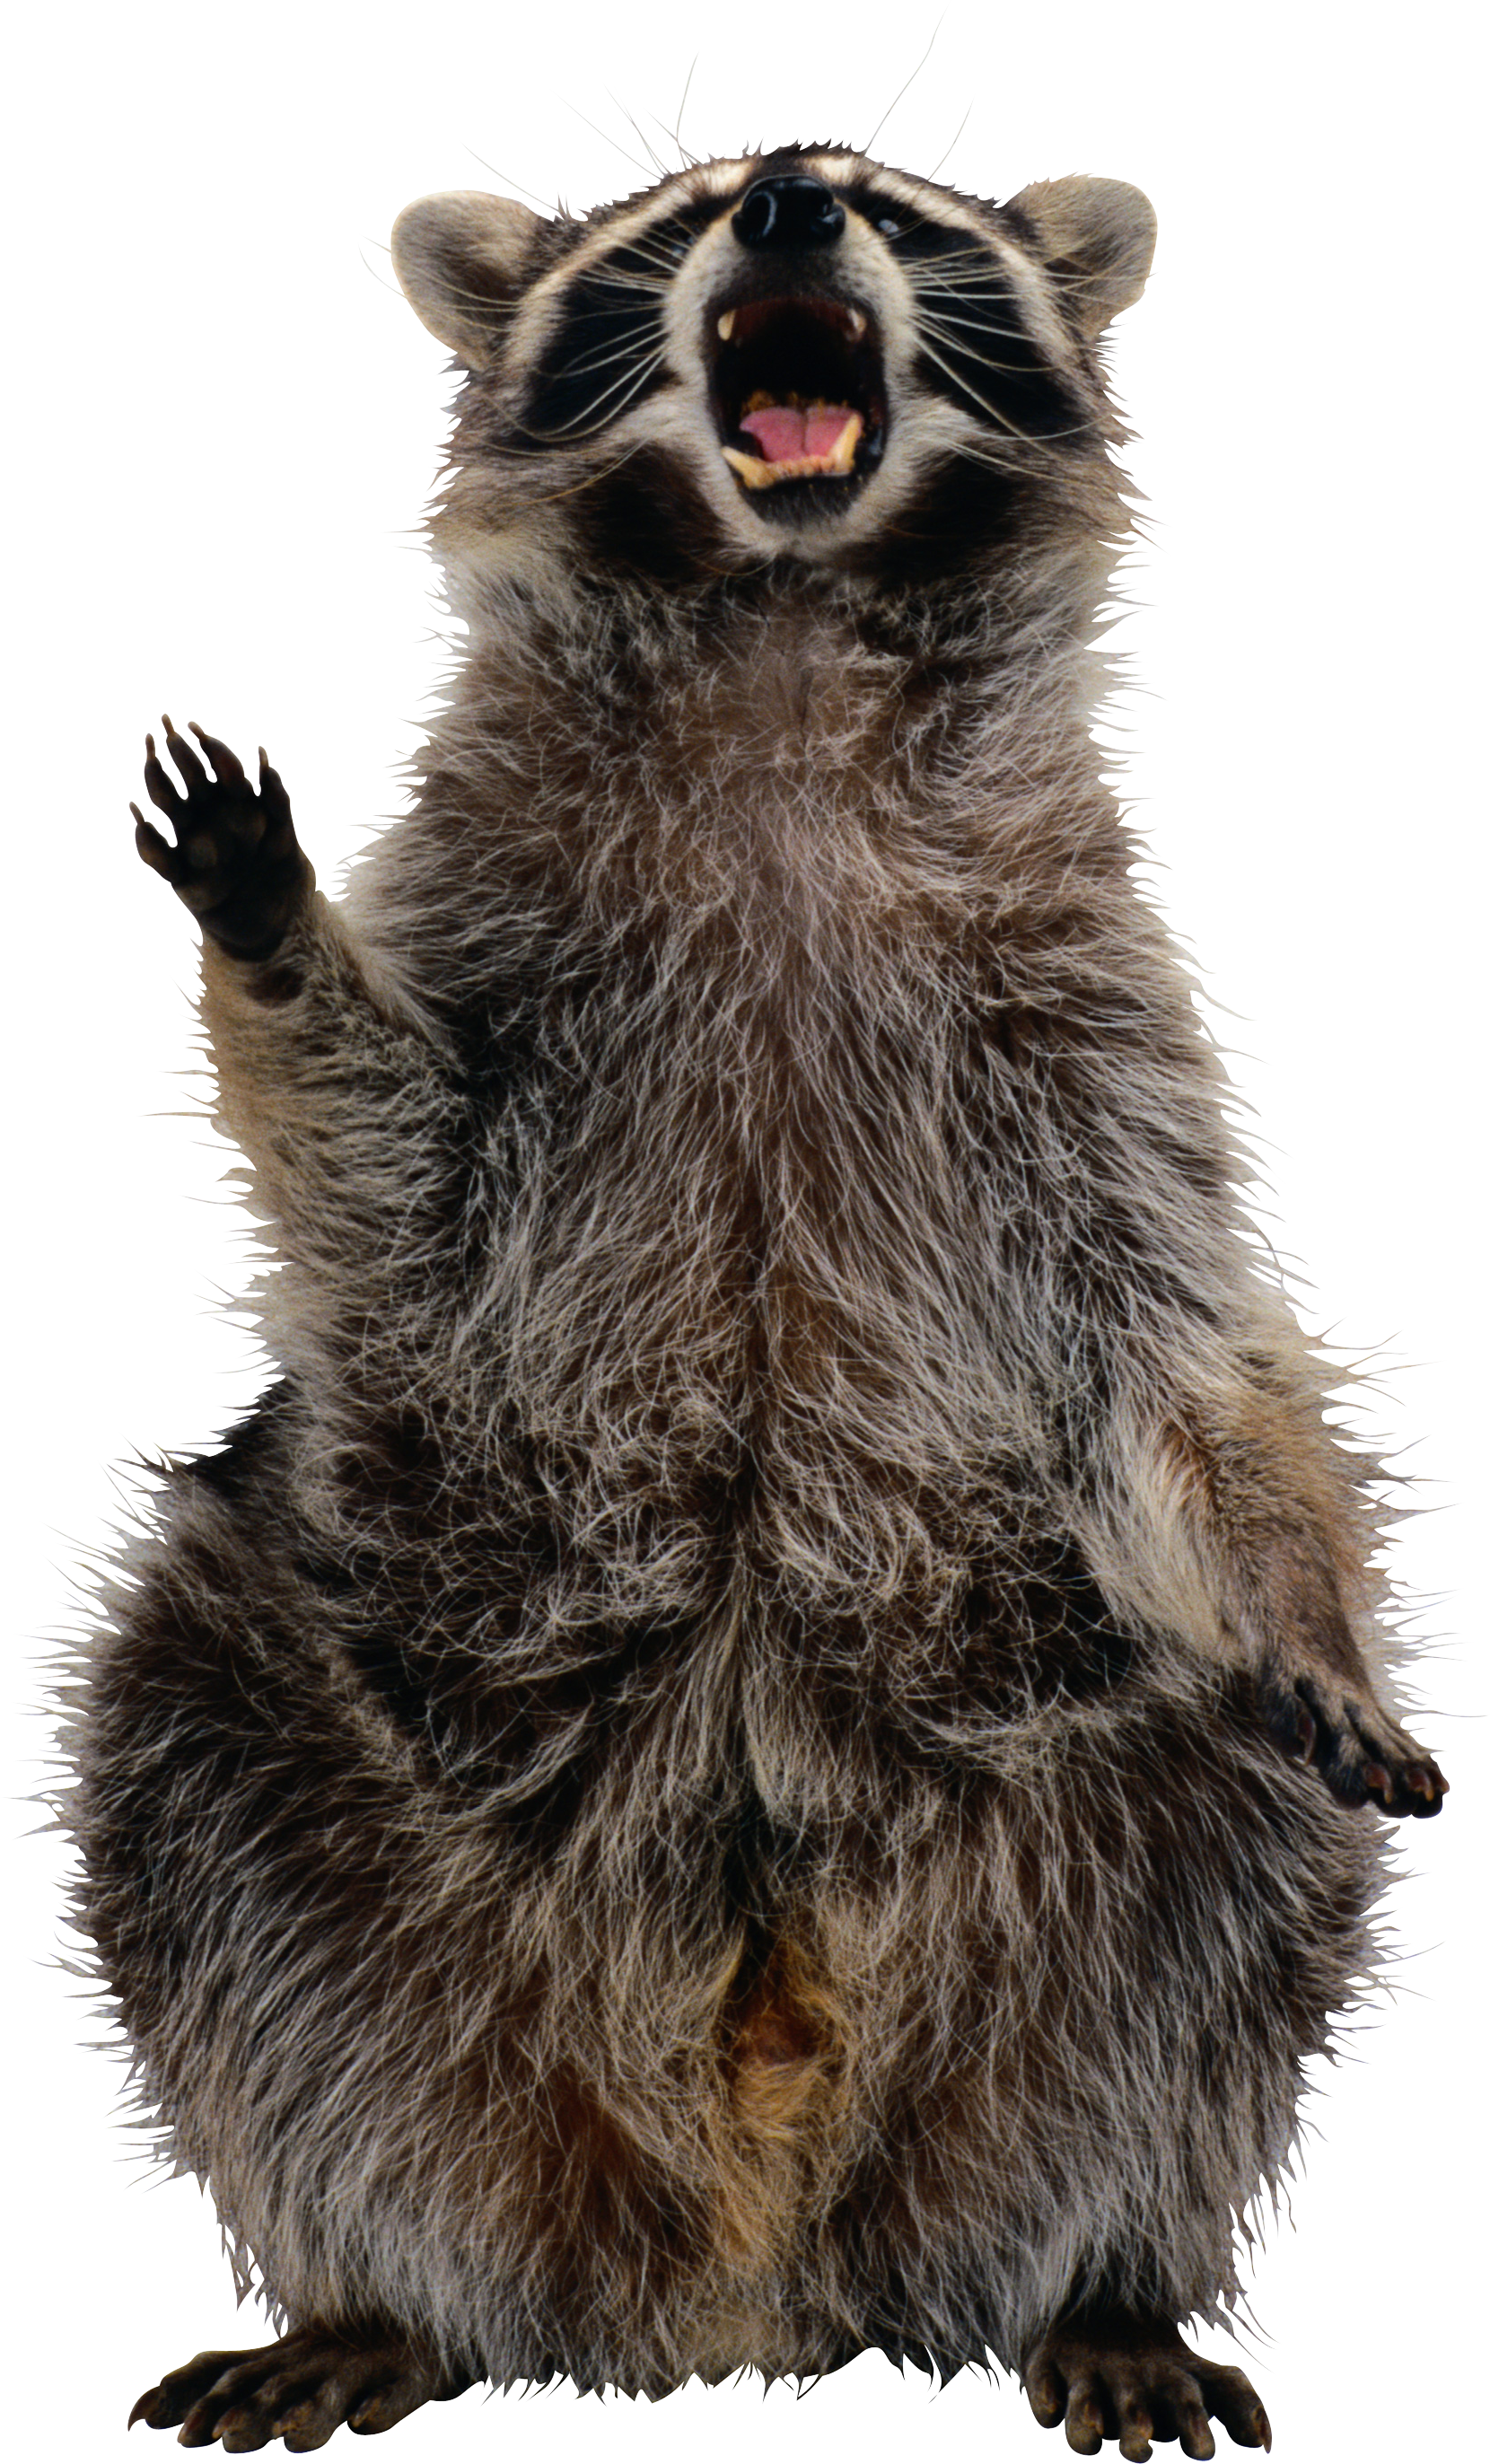 Racoon clipart nocturnal animal. Raccoon png images free